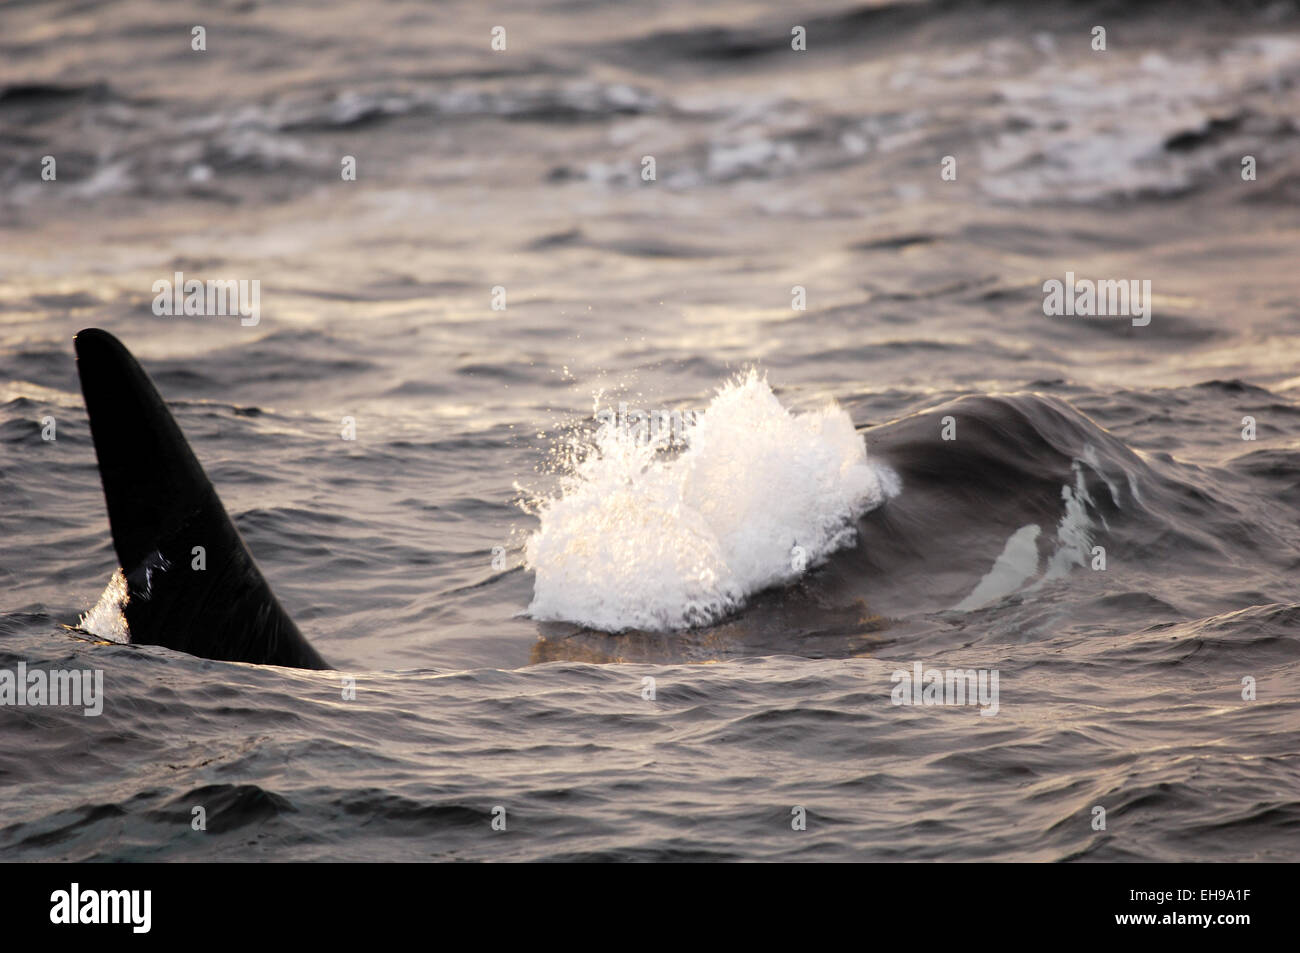 Orca or Killerwhale (Orcinus orca) feeding on herring in the Tysfjord area (Norway). Male Orcas grow up to 7 m, - Stock Image